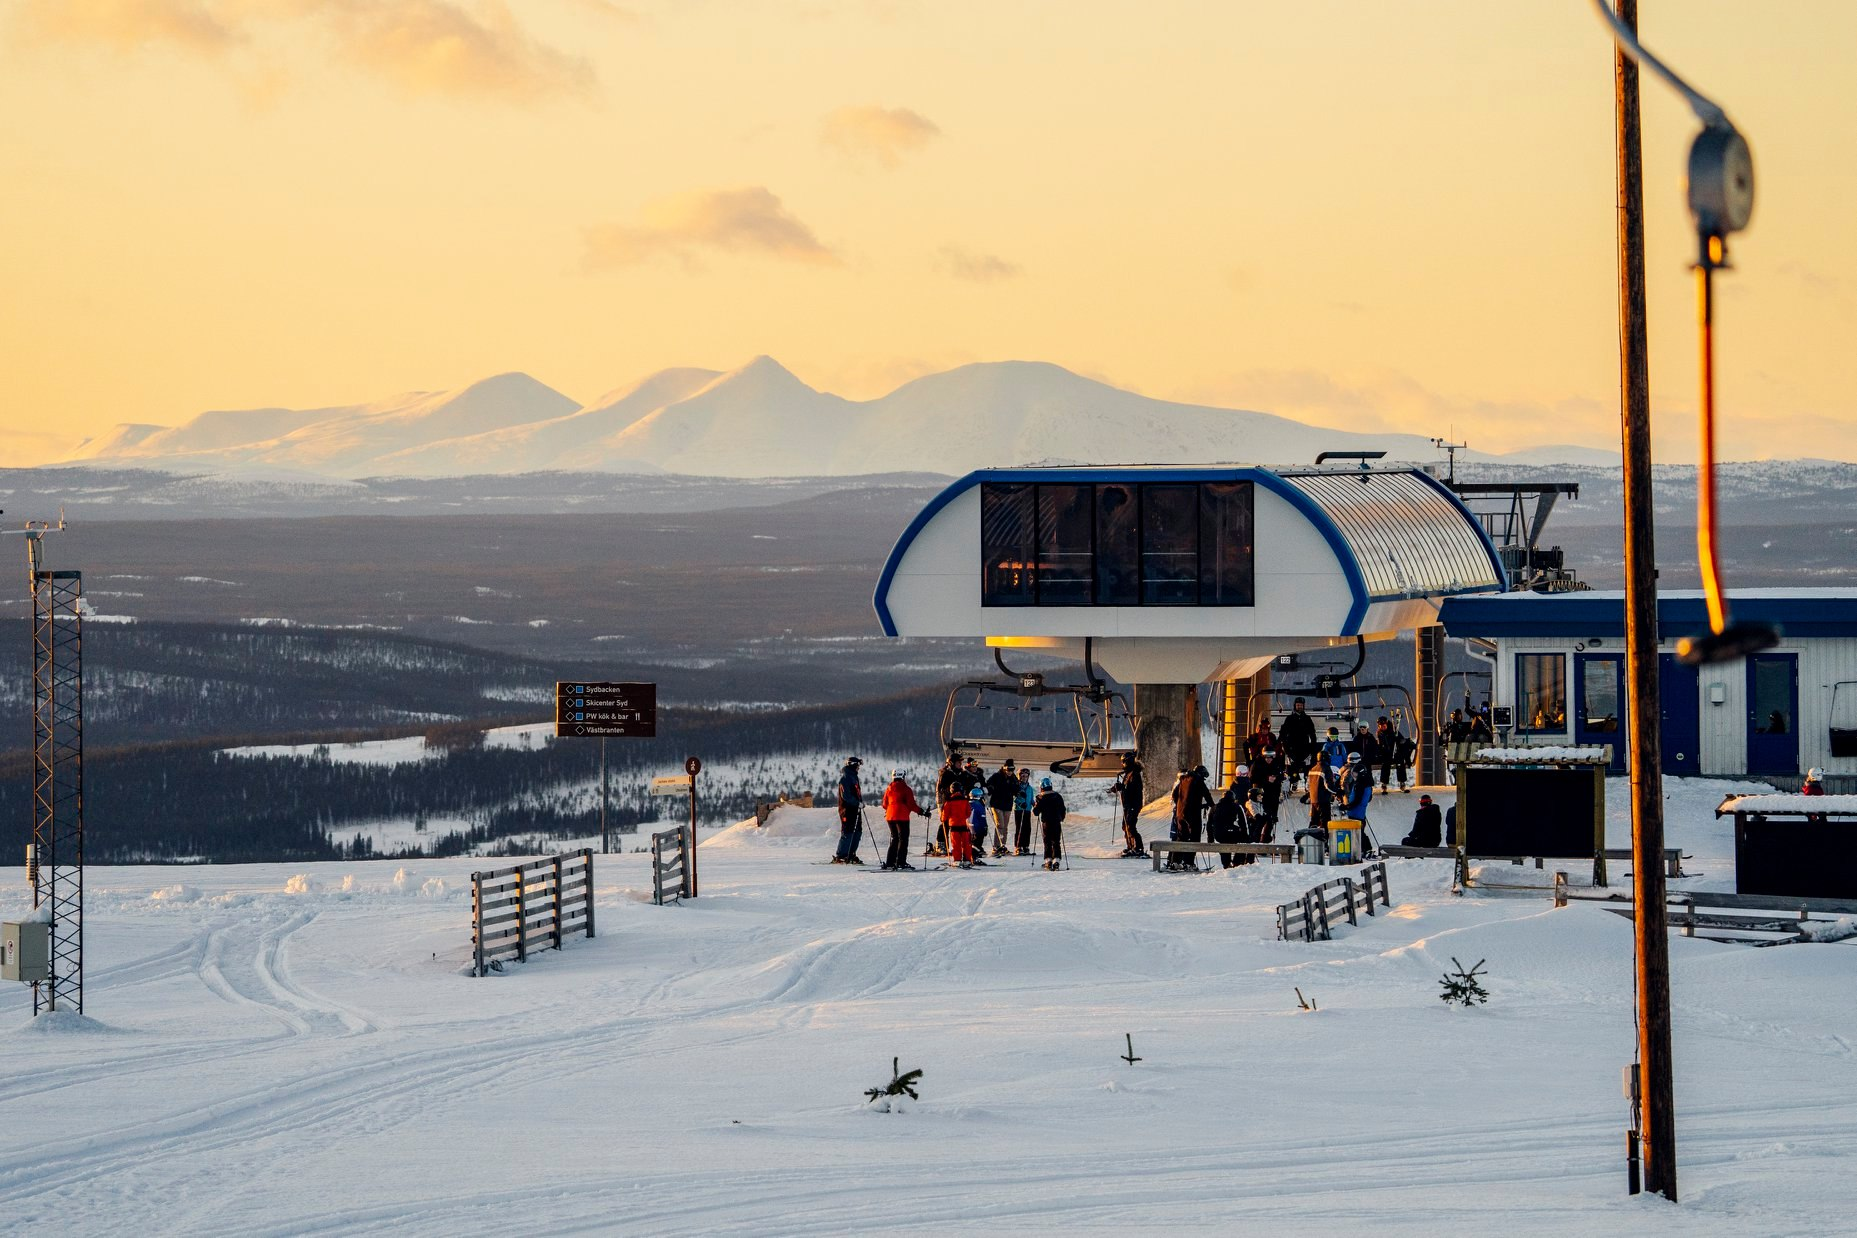 last day of the season for many Swedish ski areas, Idre Fjäll